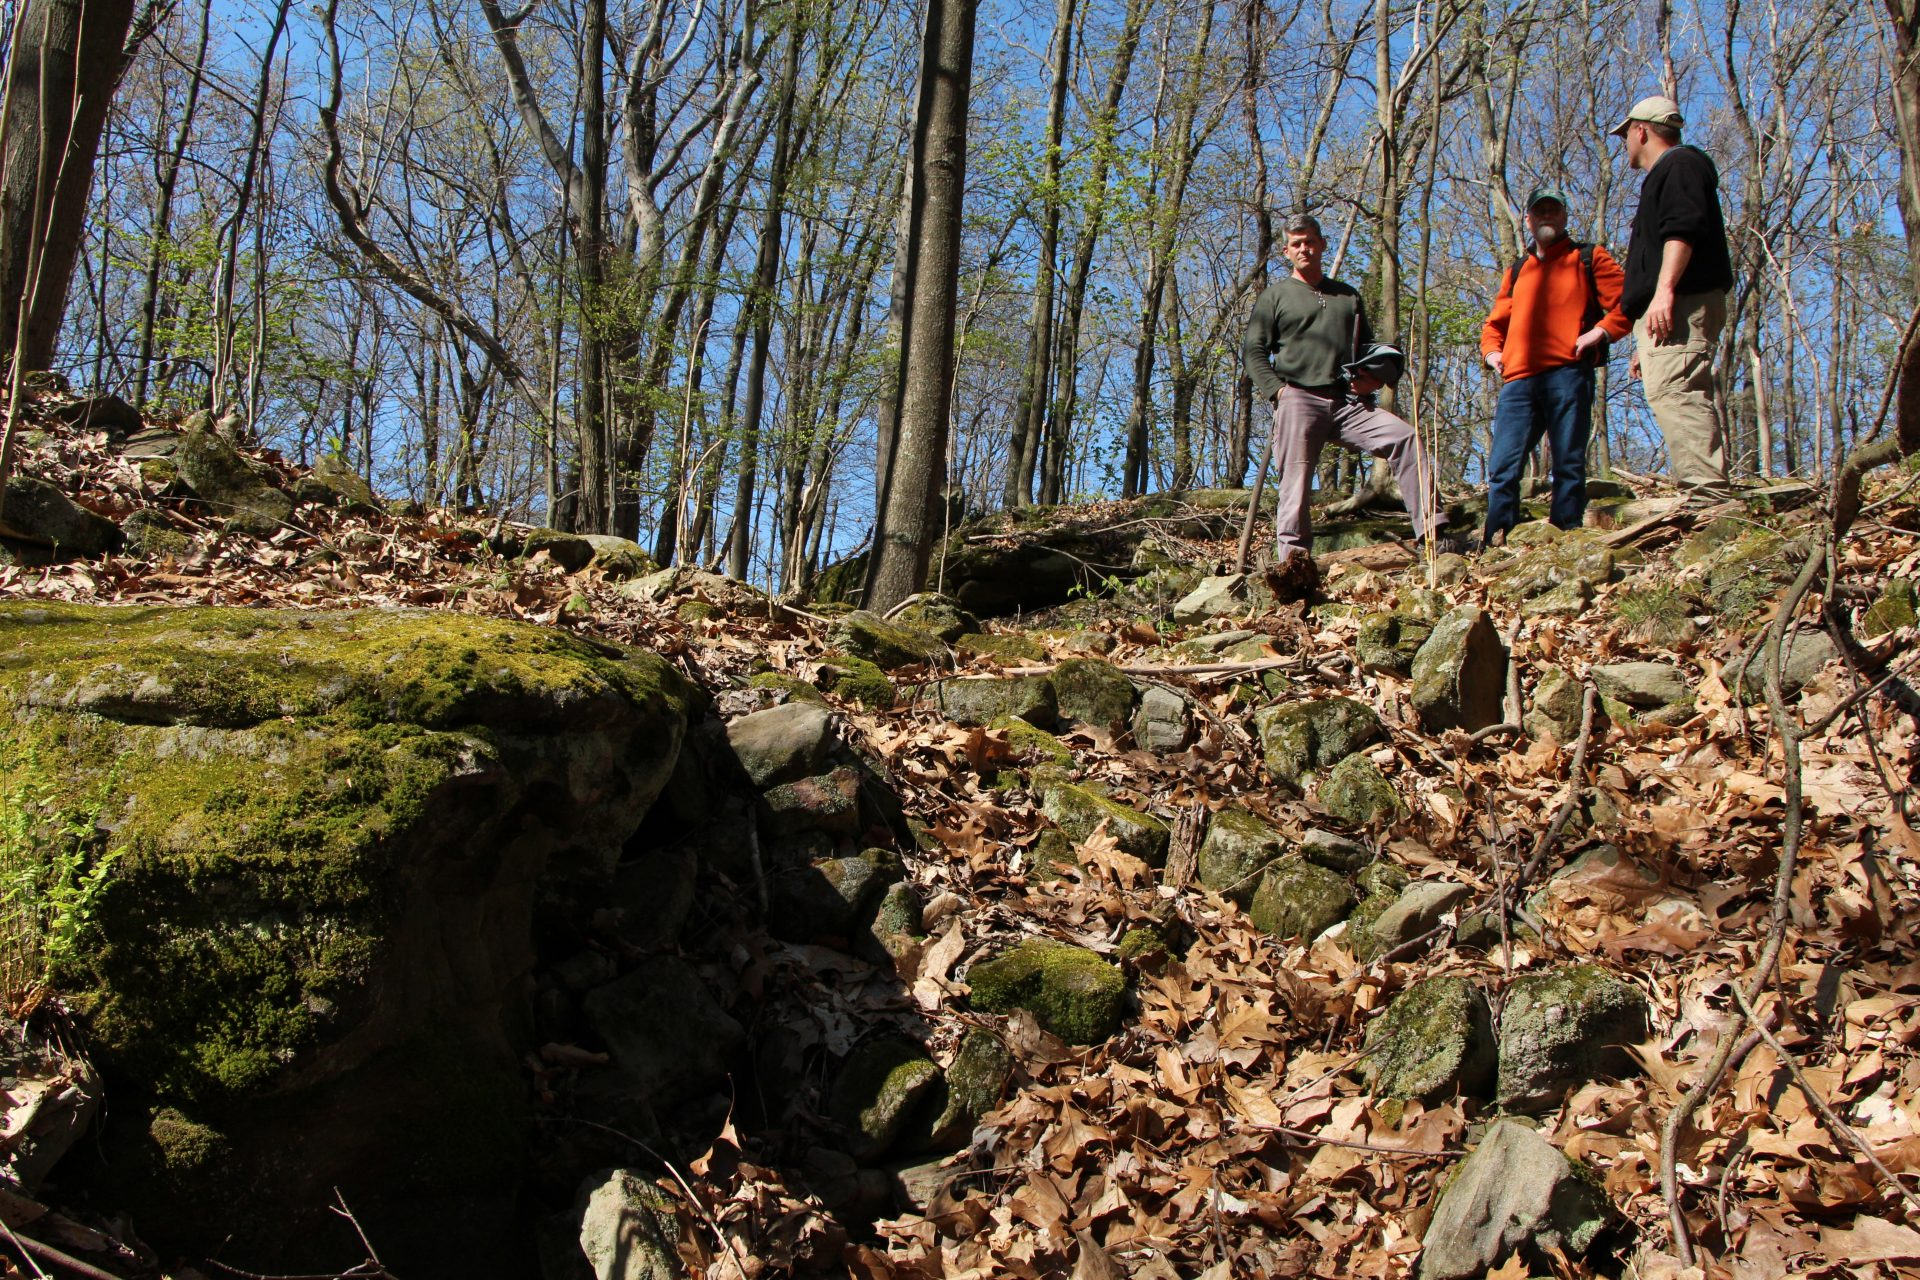 Heartland Earthworks Conservancy board members stand on top of the nearly intact section of the massive stone wall at Glenford Fort